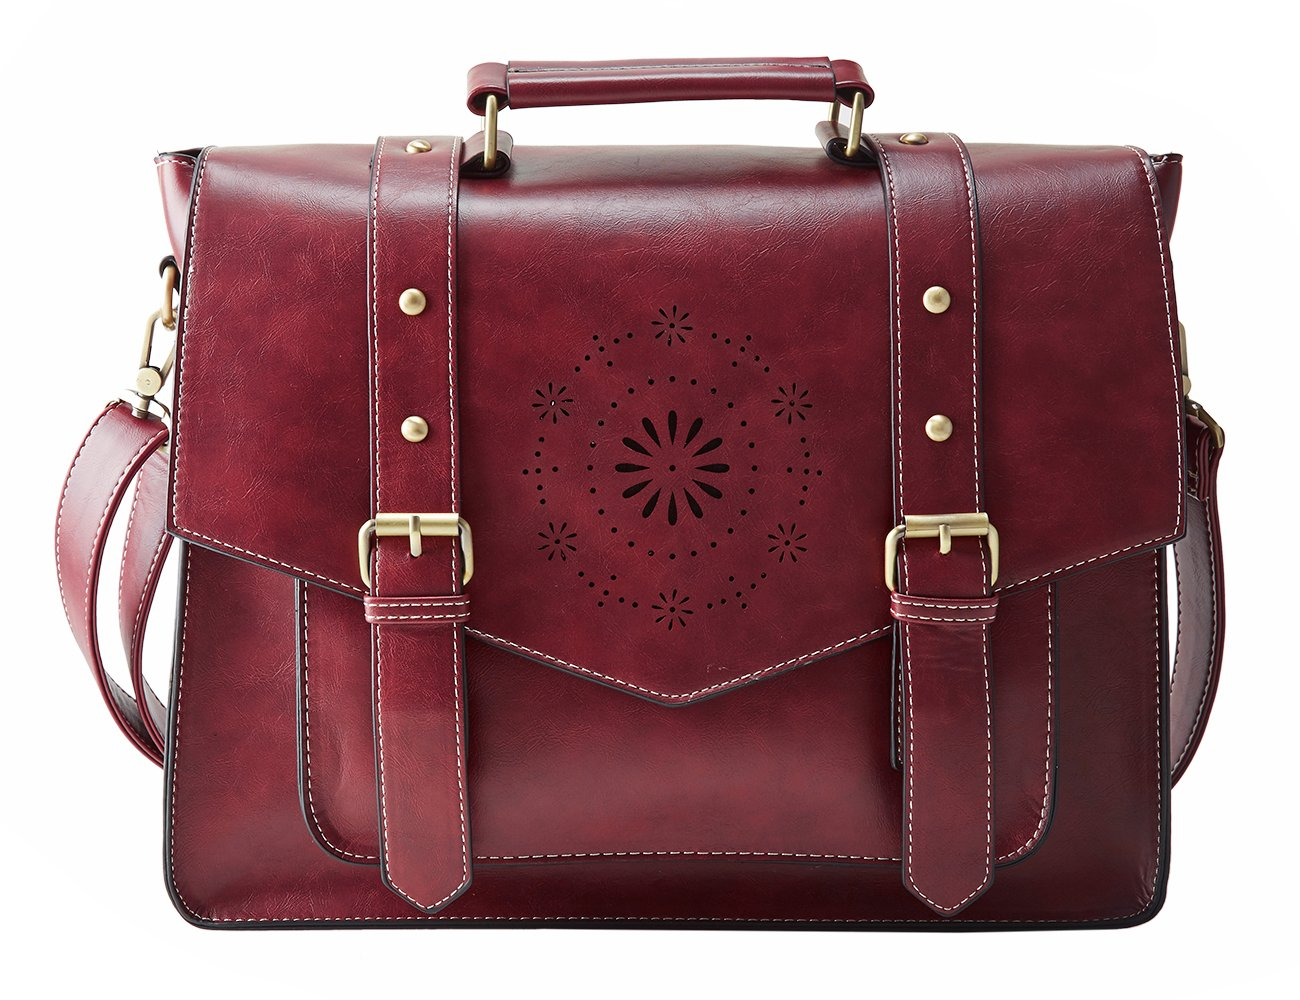 ECOSUSI Women's PU Leather Laptop Bag Tote Messenger Bag Crossbody Briefcase Fit 14'' Laptop, Red